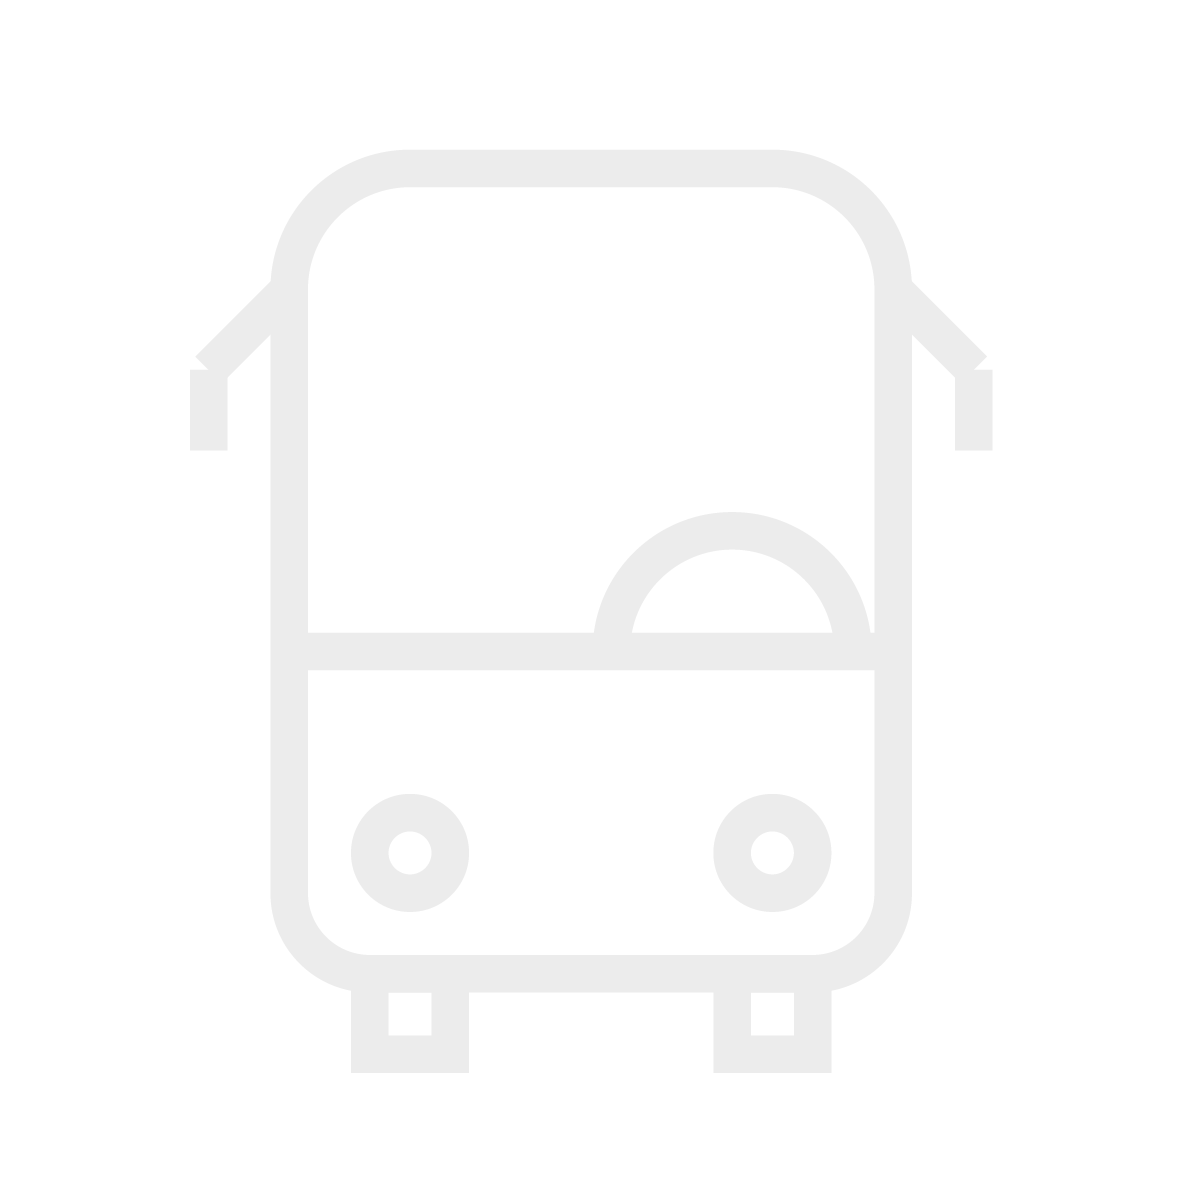 SwissPeaks_Icons Symboles_Grey_Transport.png